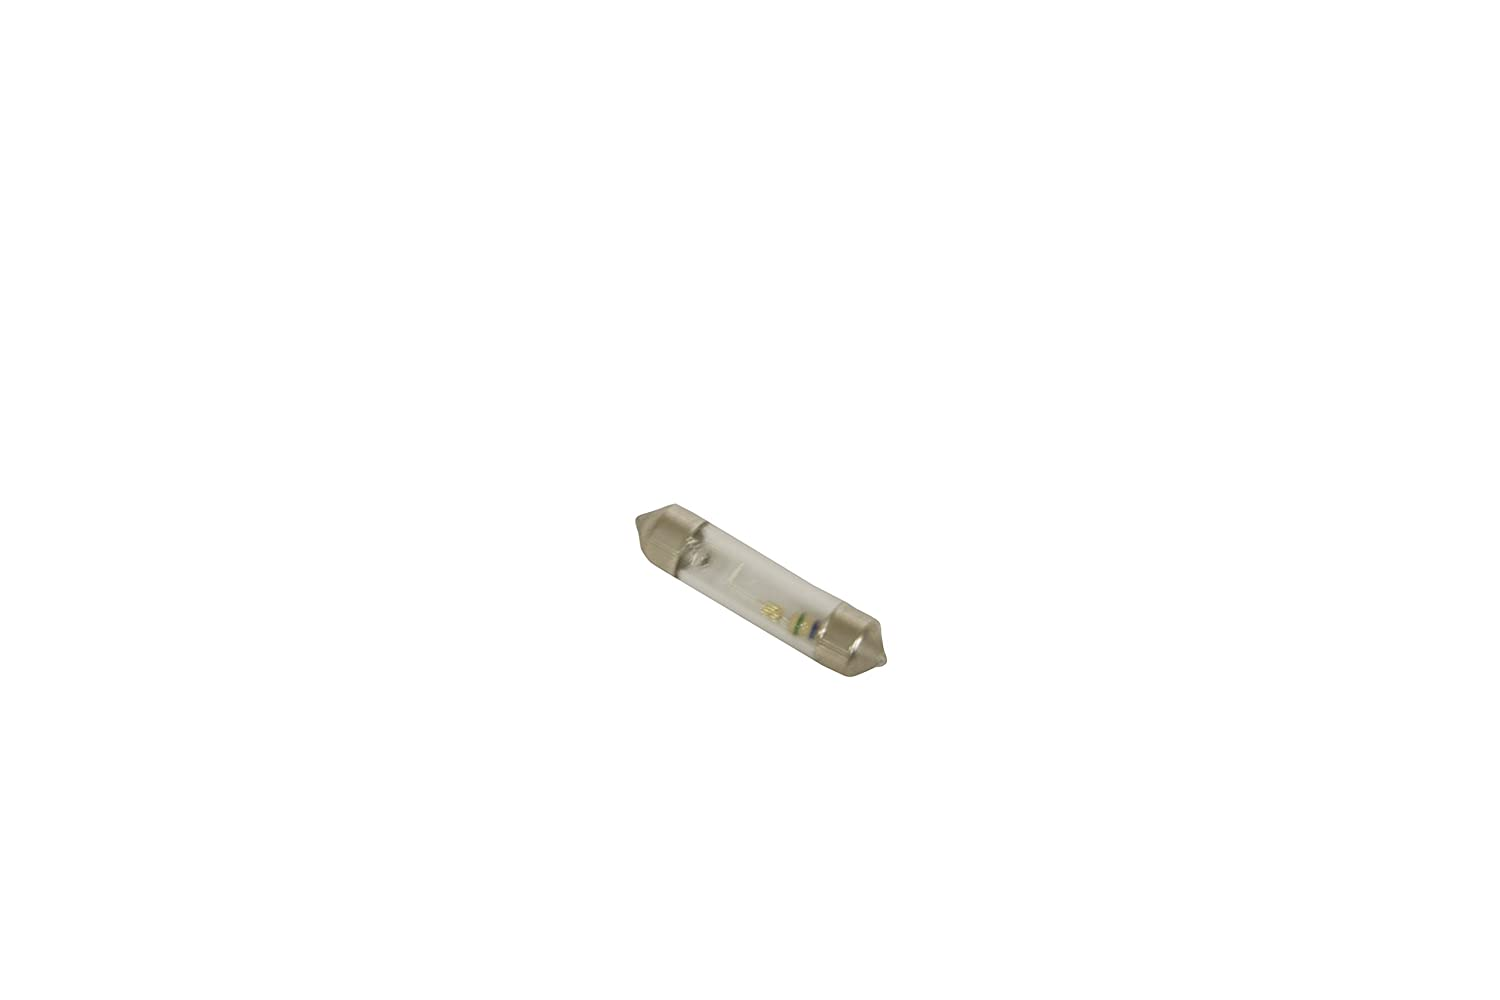 Lisle 24560 Replacement Bulb For Computer Safe Circuit By Automotive Continuity Tester